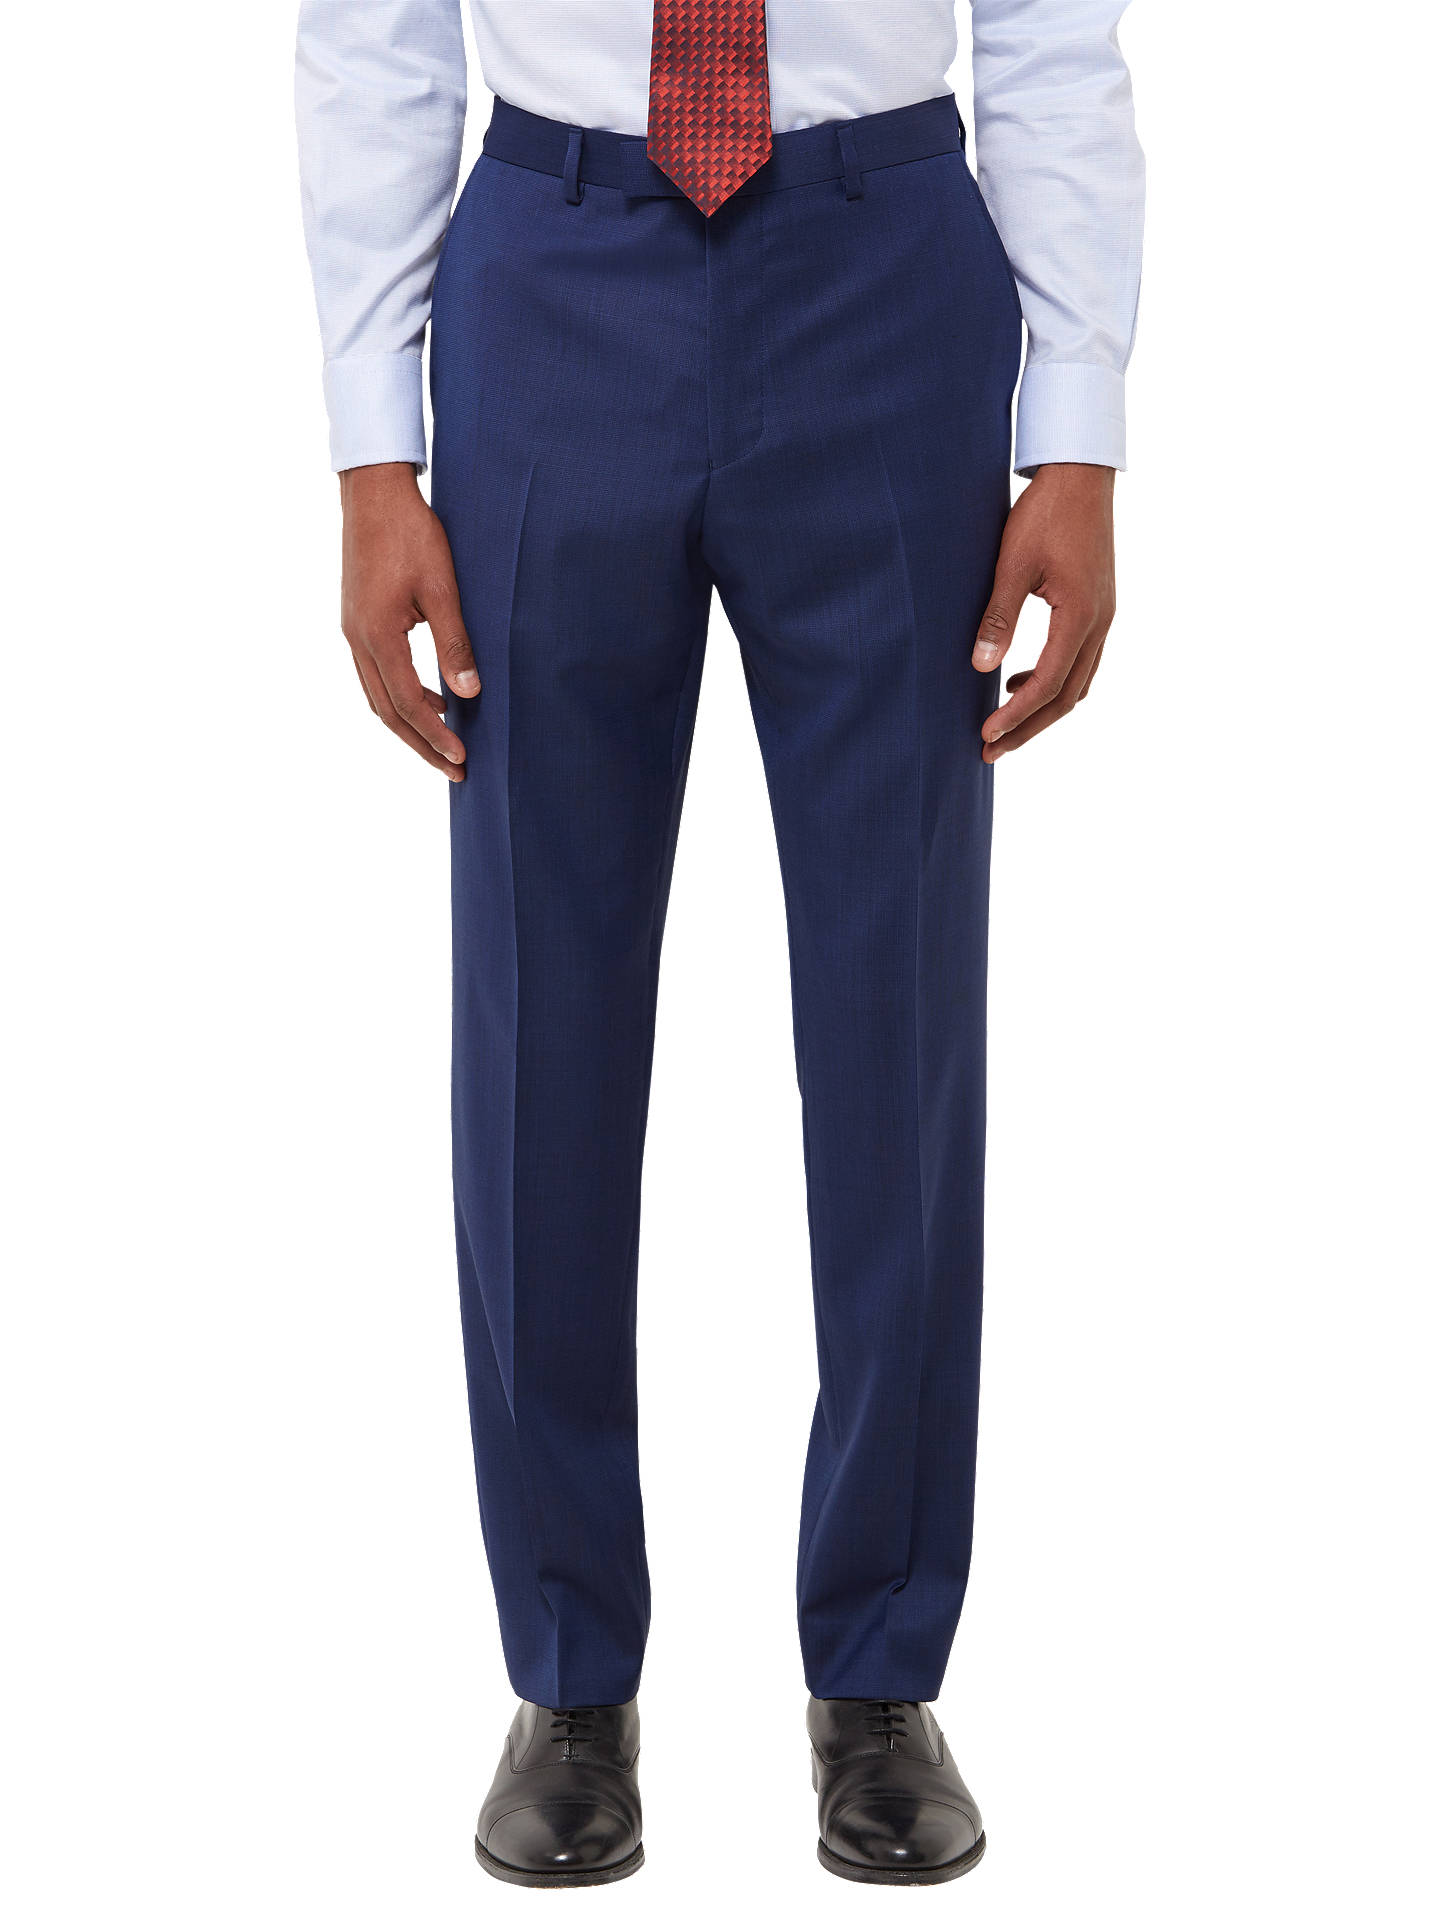 BuyJaeger Wool Twill Slim Fit Suit Trousers, Royal Blue, 30R Online at johnlewis.com